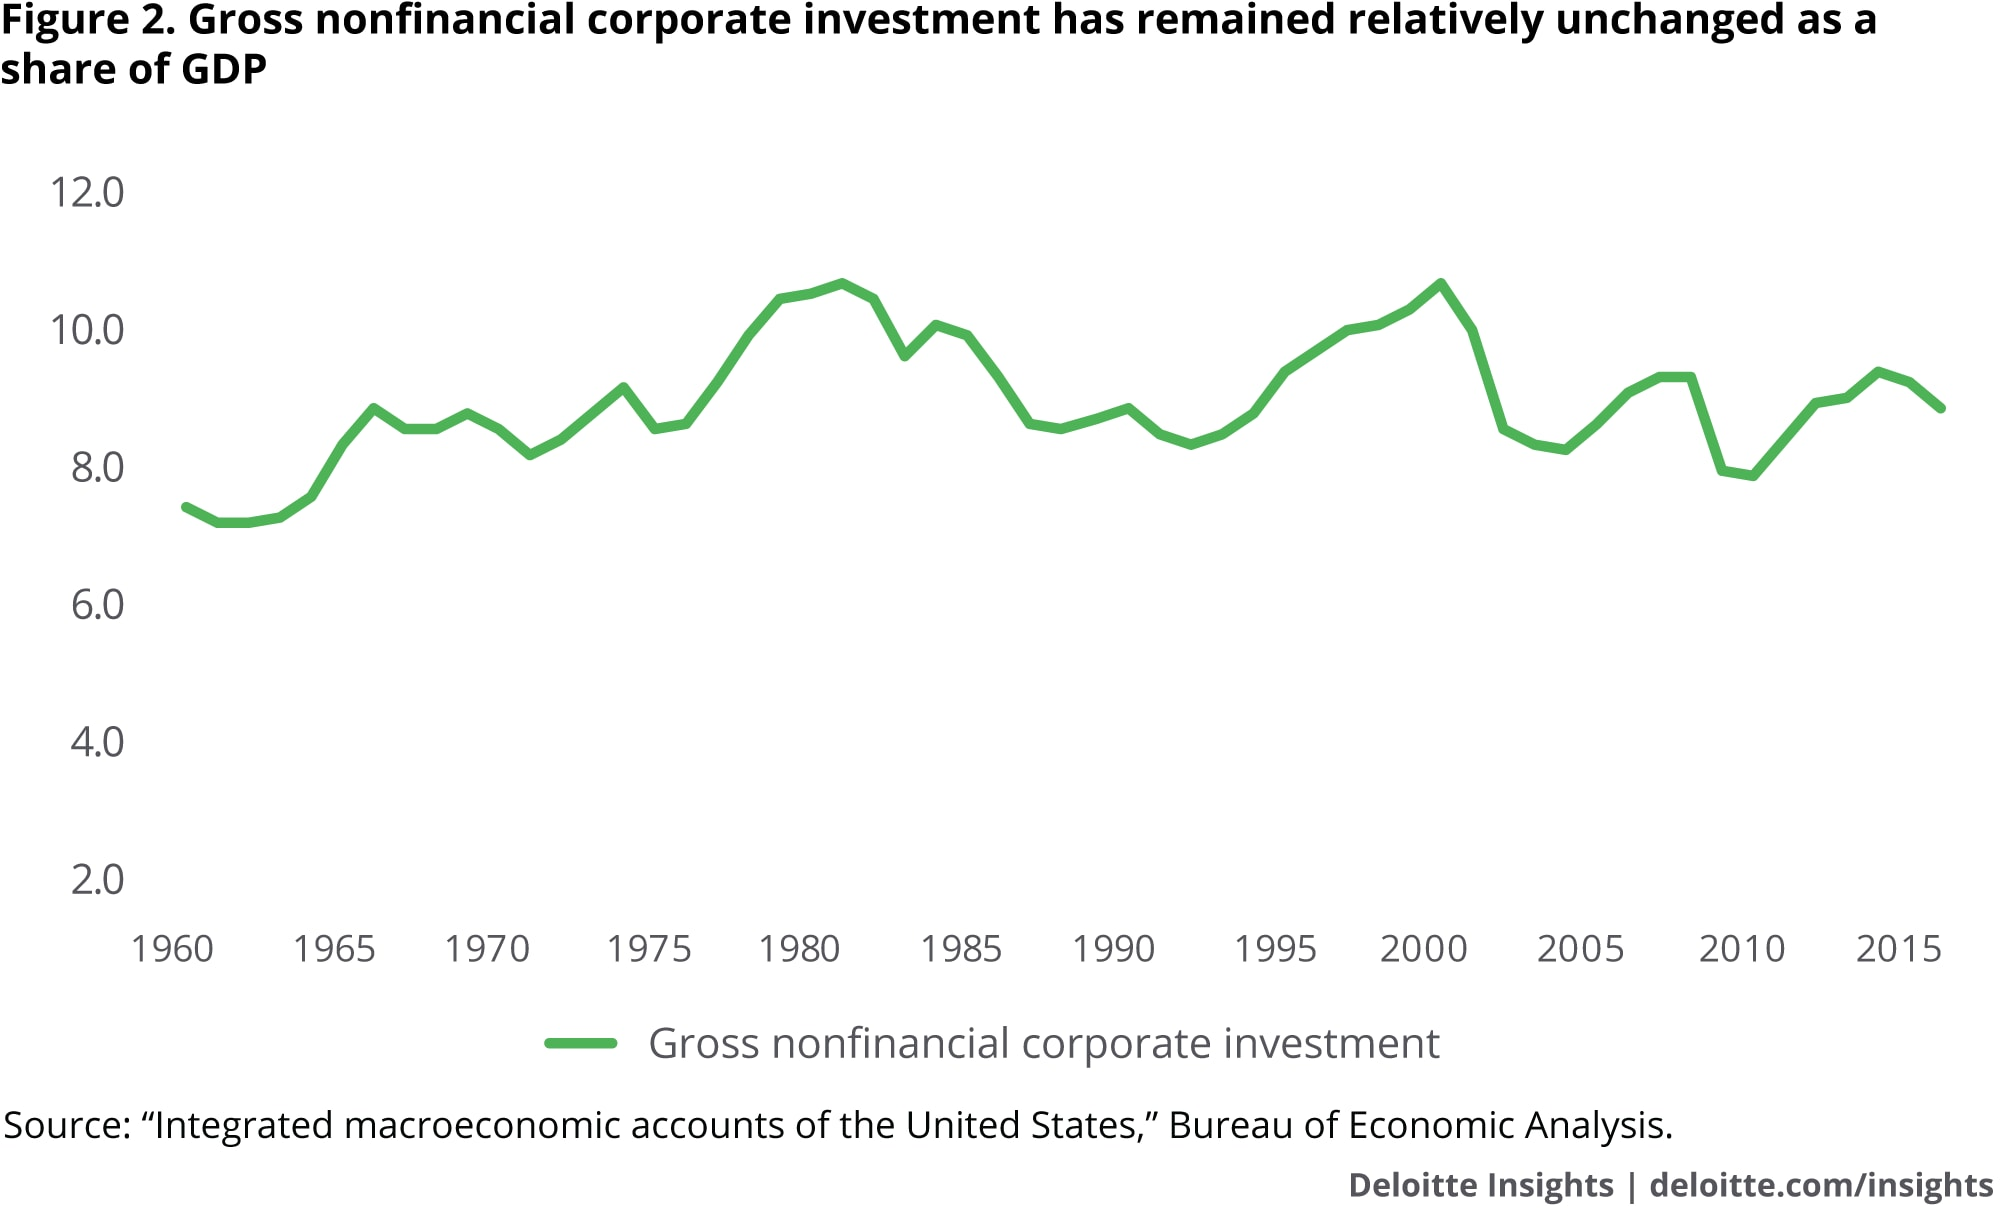 Gross nonfinancial corporate investment has remained relatively unchanged as a share of GDP